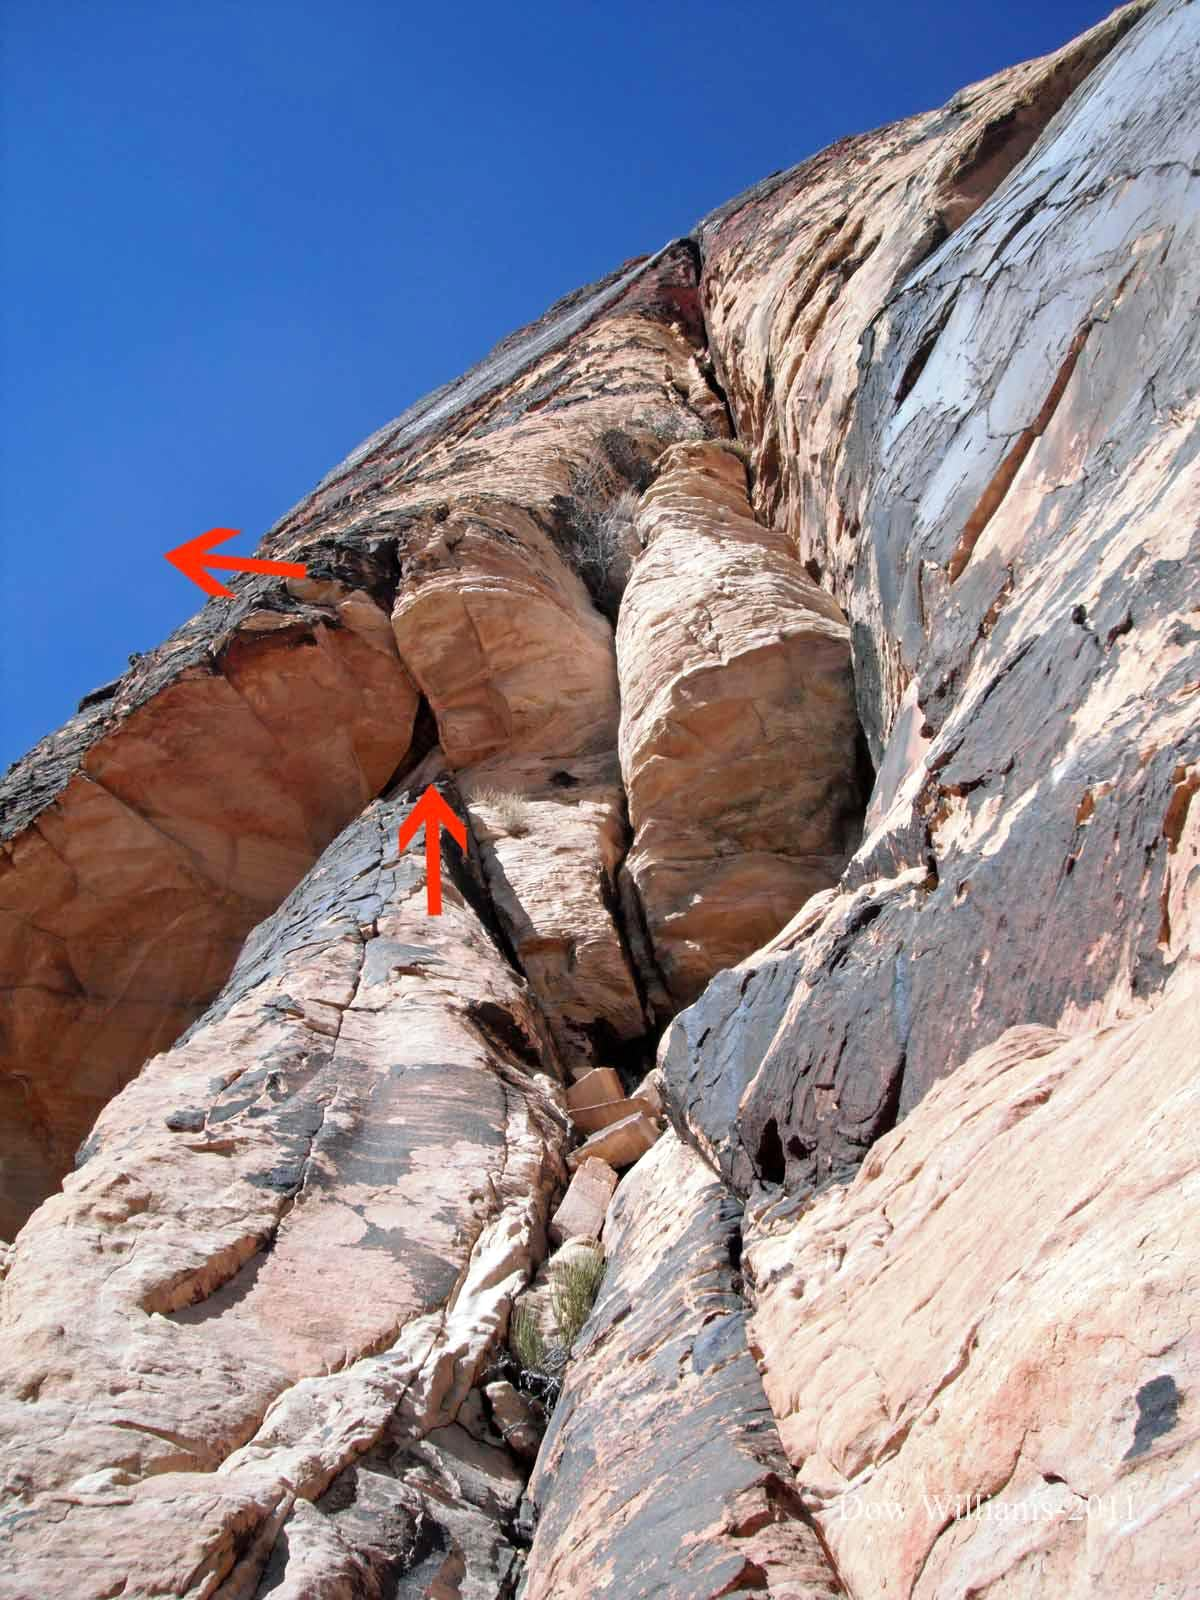 Sandcastle, 5.10c, 4 Pitches